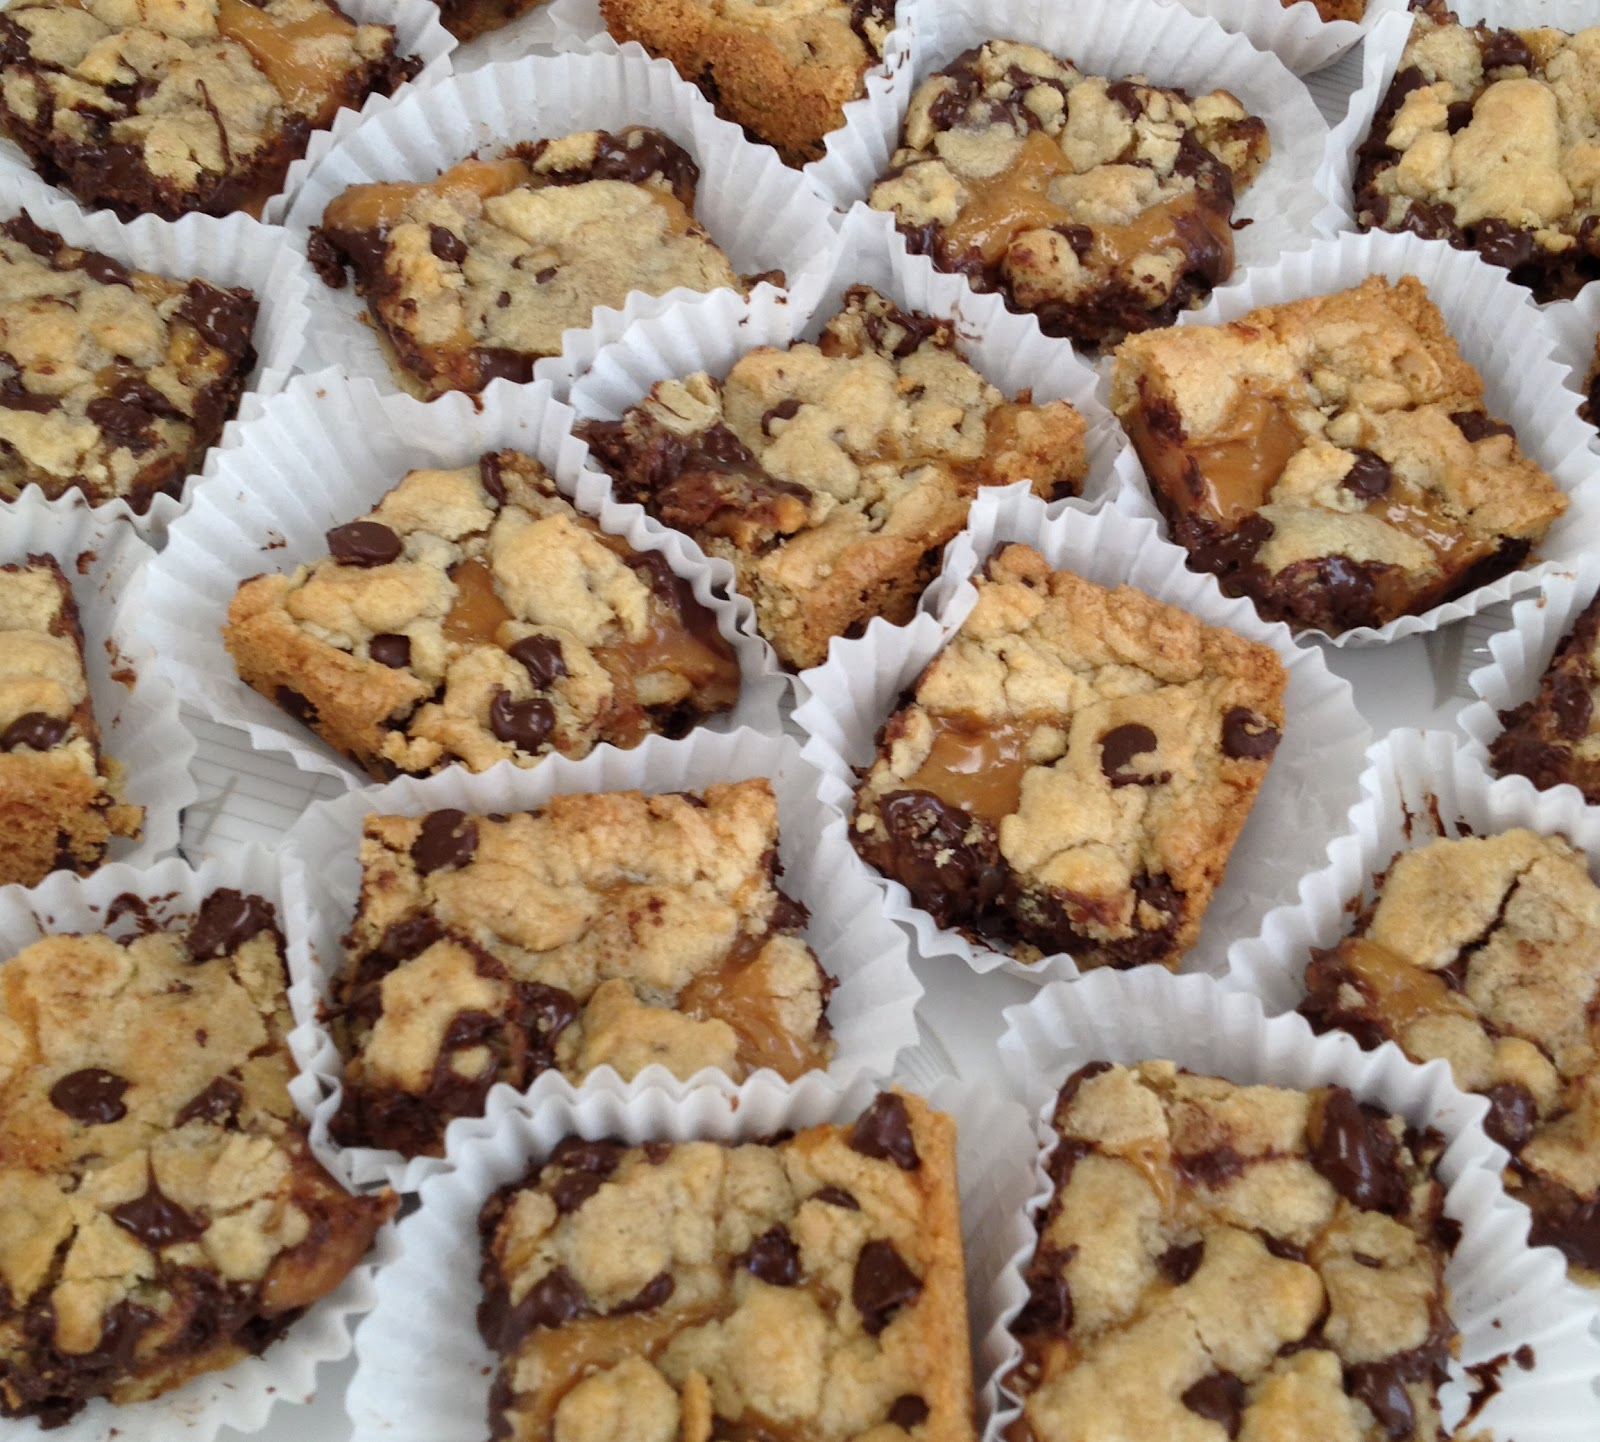 Gourmet Girl: RECIPE: Salted Caramel Chocolate Chip Cookie Bars